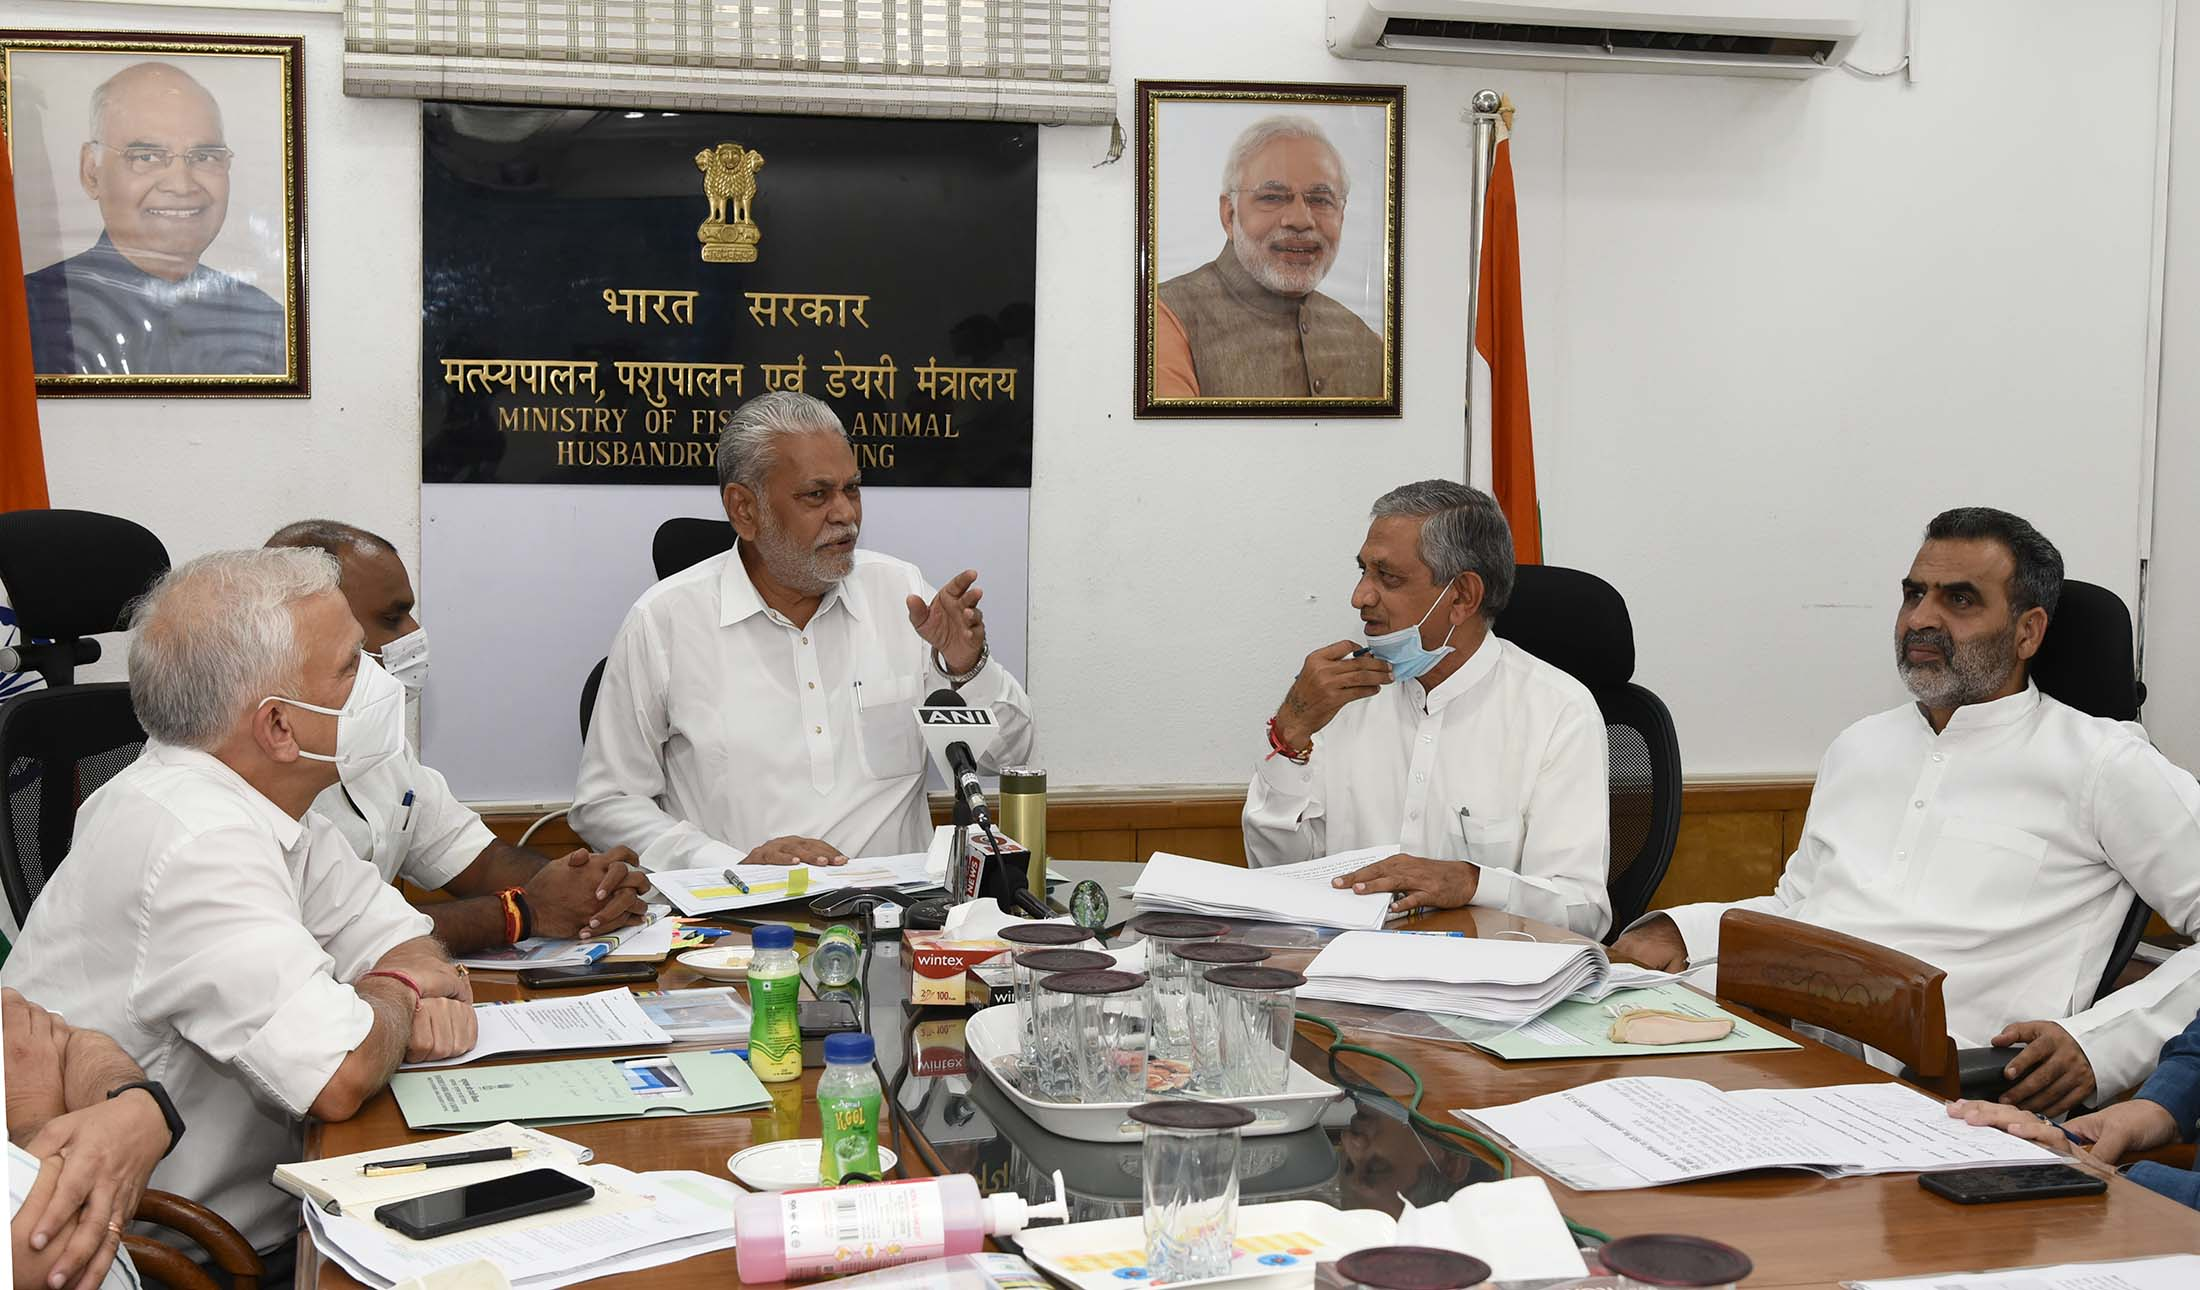 Union Minister of Fisheries, Animal Husbandry and Dairying chairs review meeting with Gujarat State Animal Husbandry and Dairying Minister